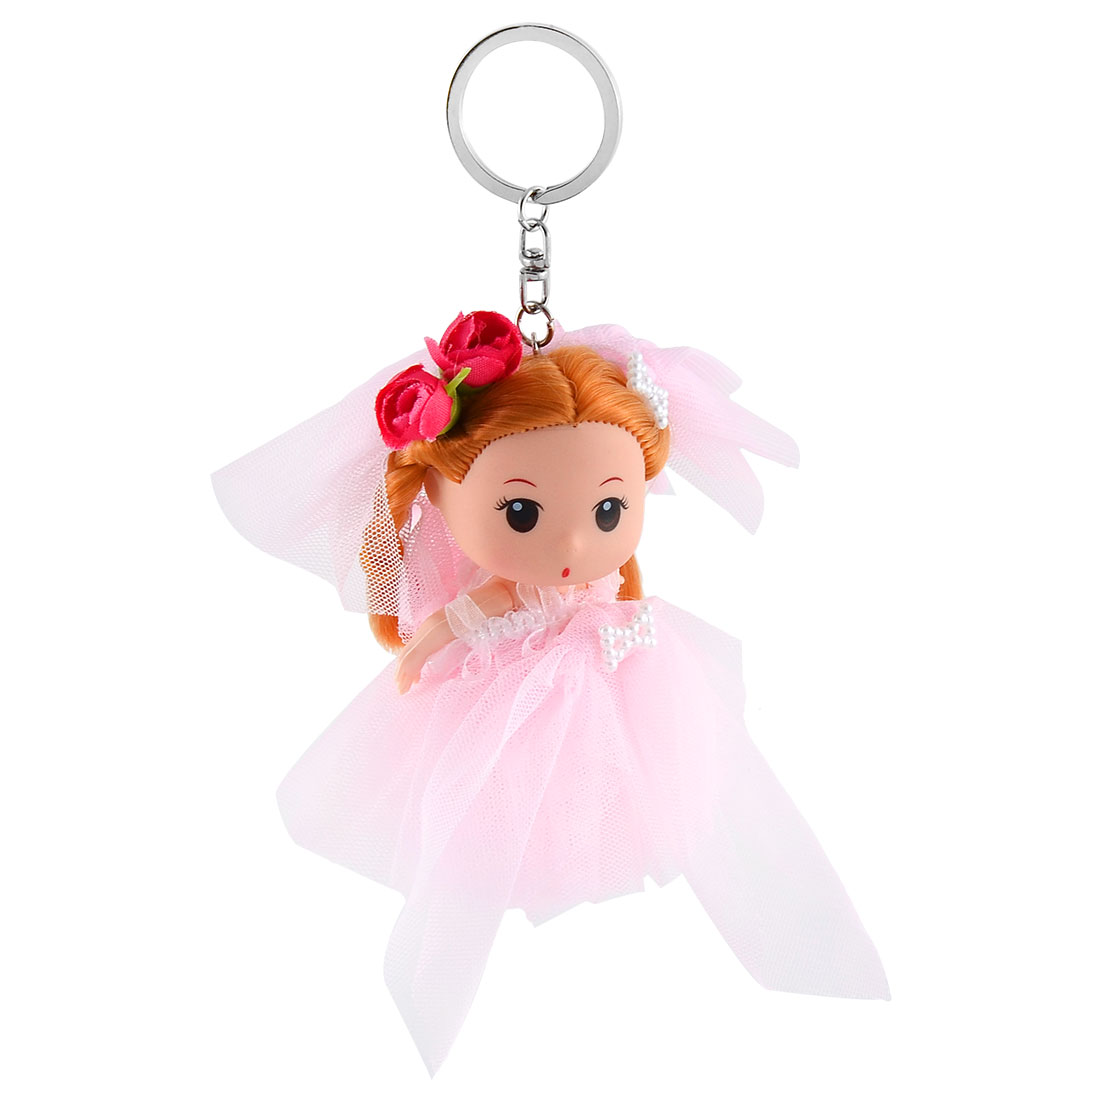 Women Handbag Veil Dress Girl Pendant Decor Hang Doll Keychain Key Ring Pink